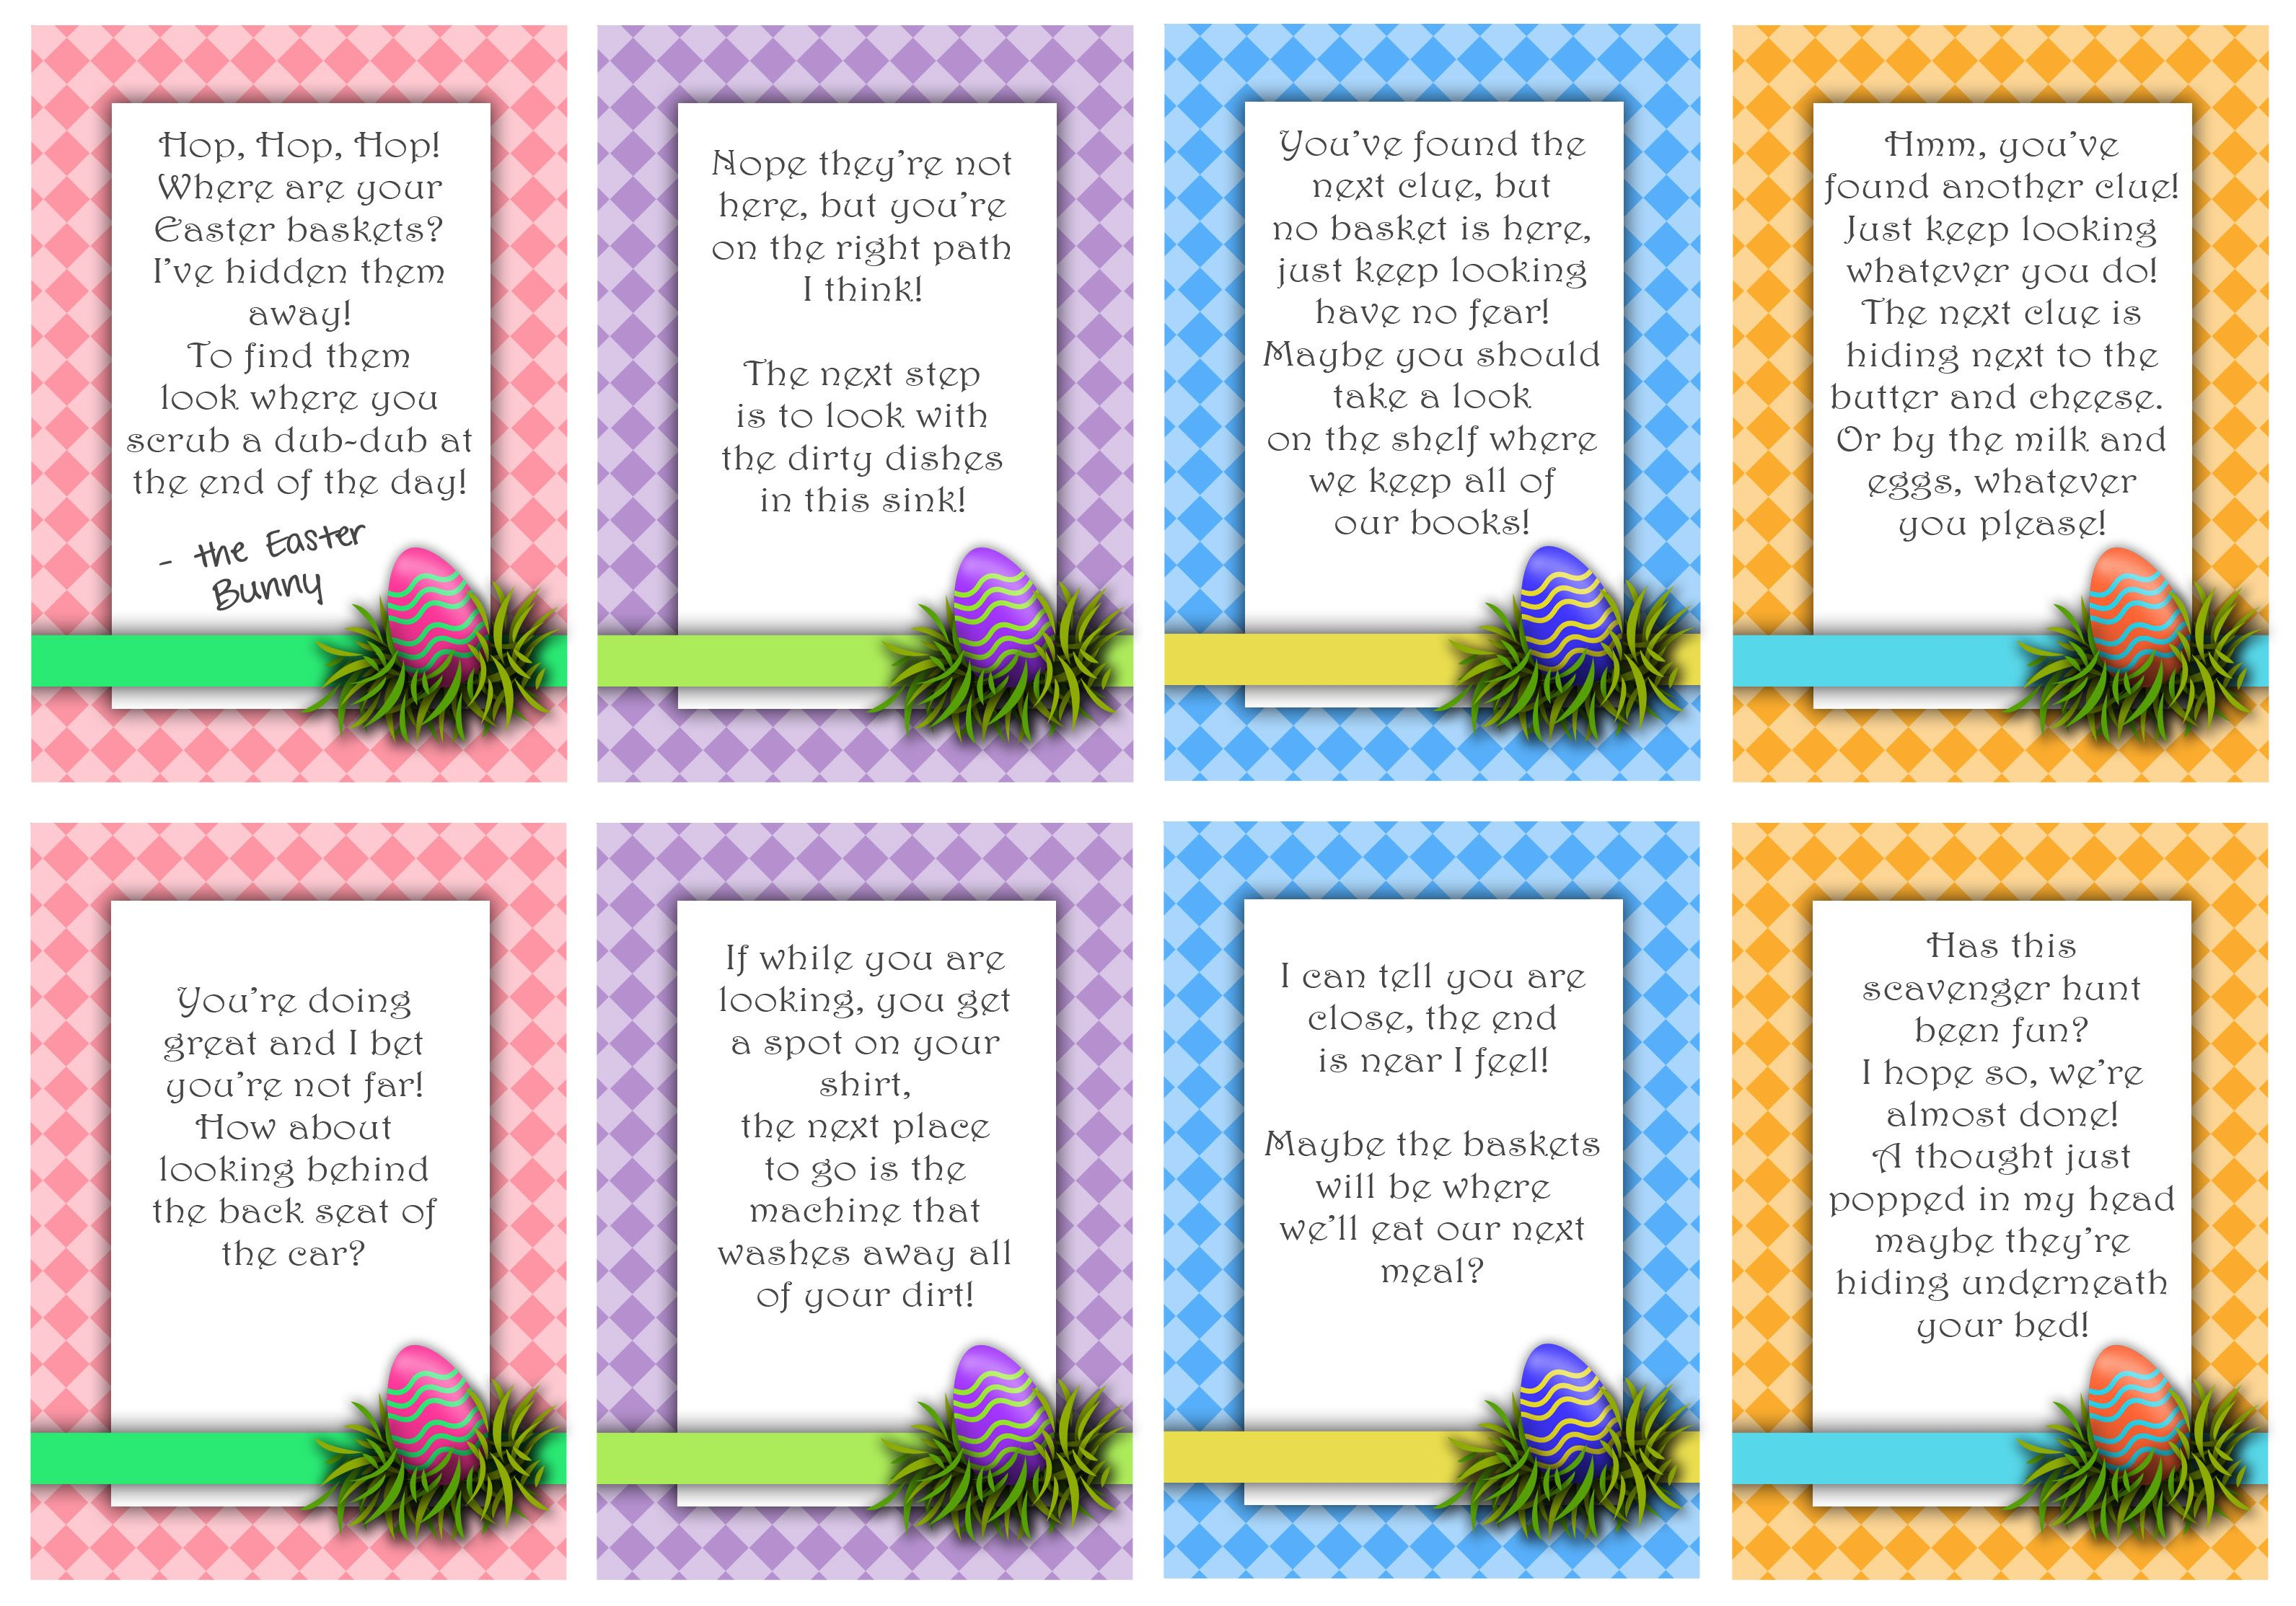 Easter basket scavenger hunt easter pinterest easter baskets print off these adorable easter basket scavenger hunt cards for an easy and fun activity send the kids off on an exciting easter scavenger hunt negle Choice Image